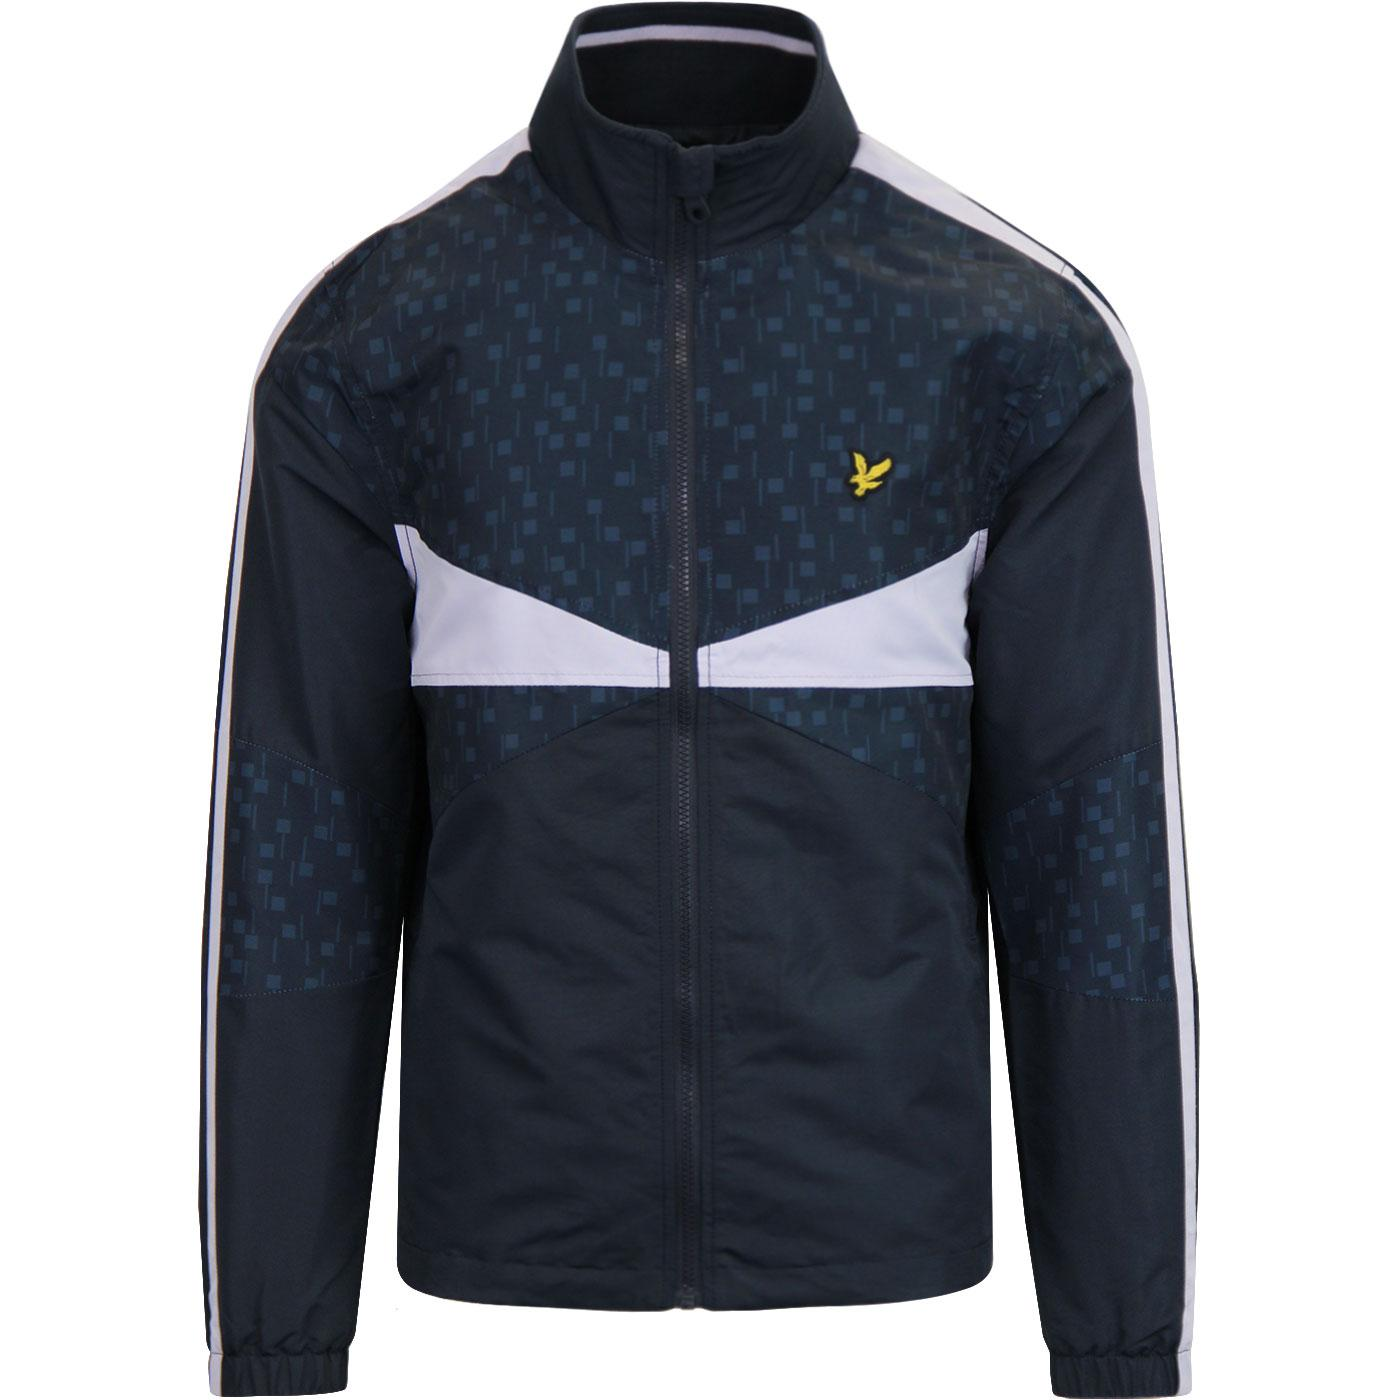 LYLE & SCOTT Tile Print Indie Colour Block Jacket